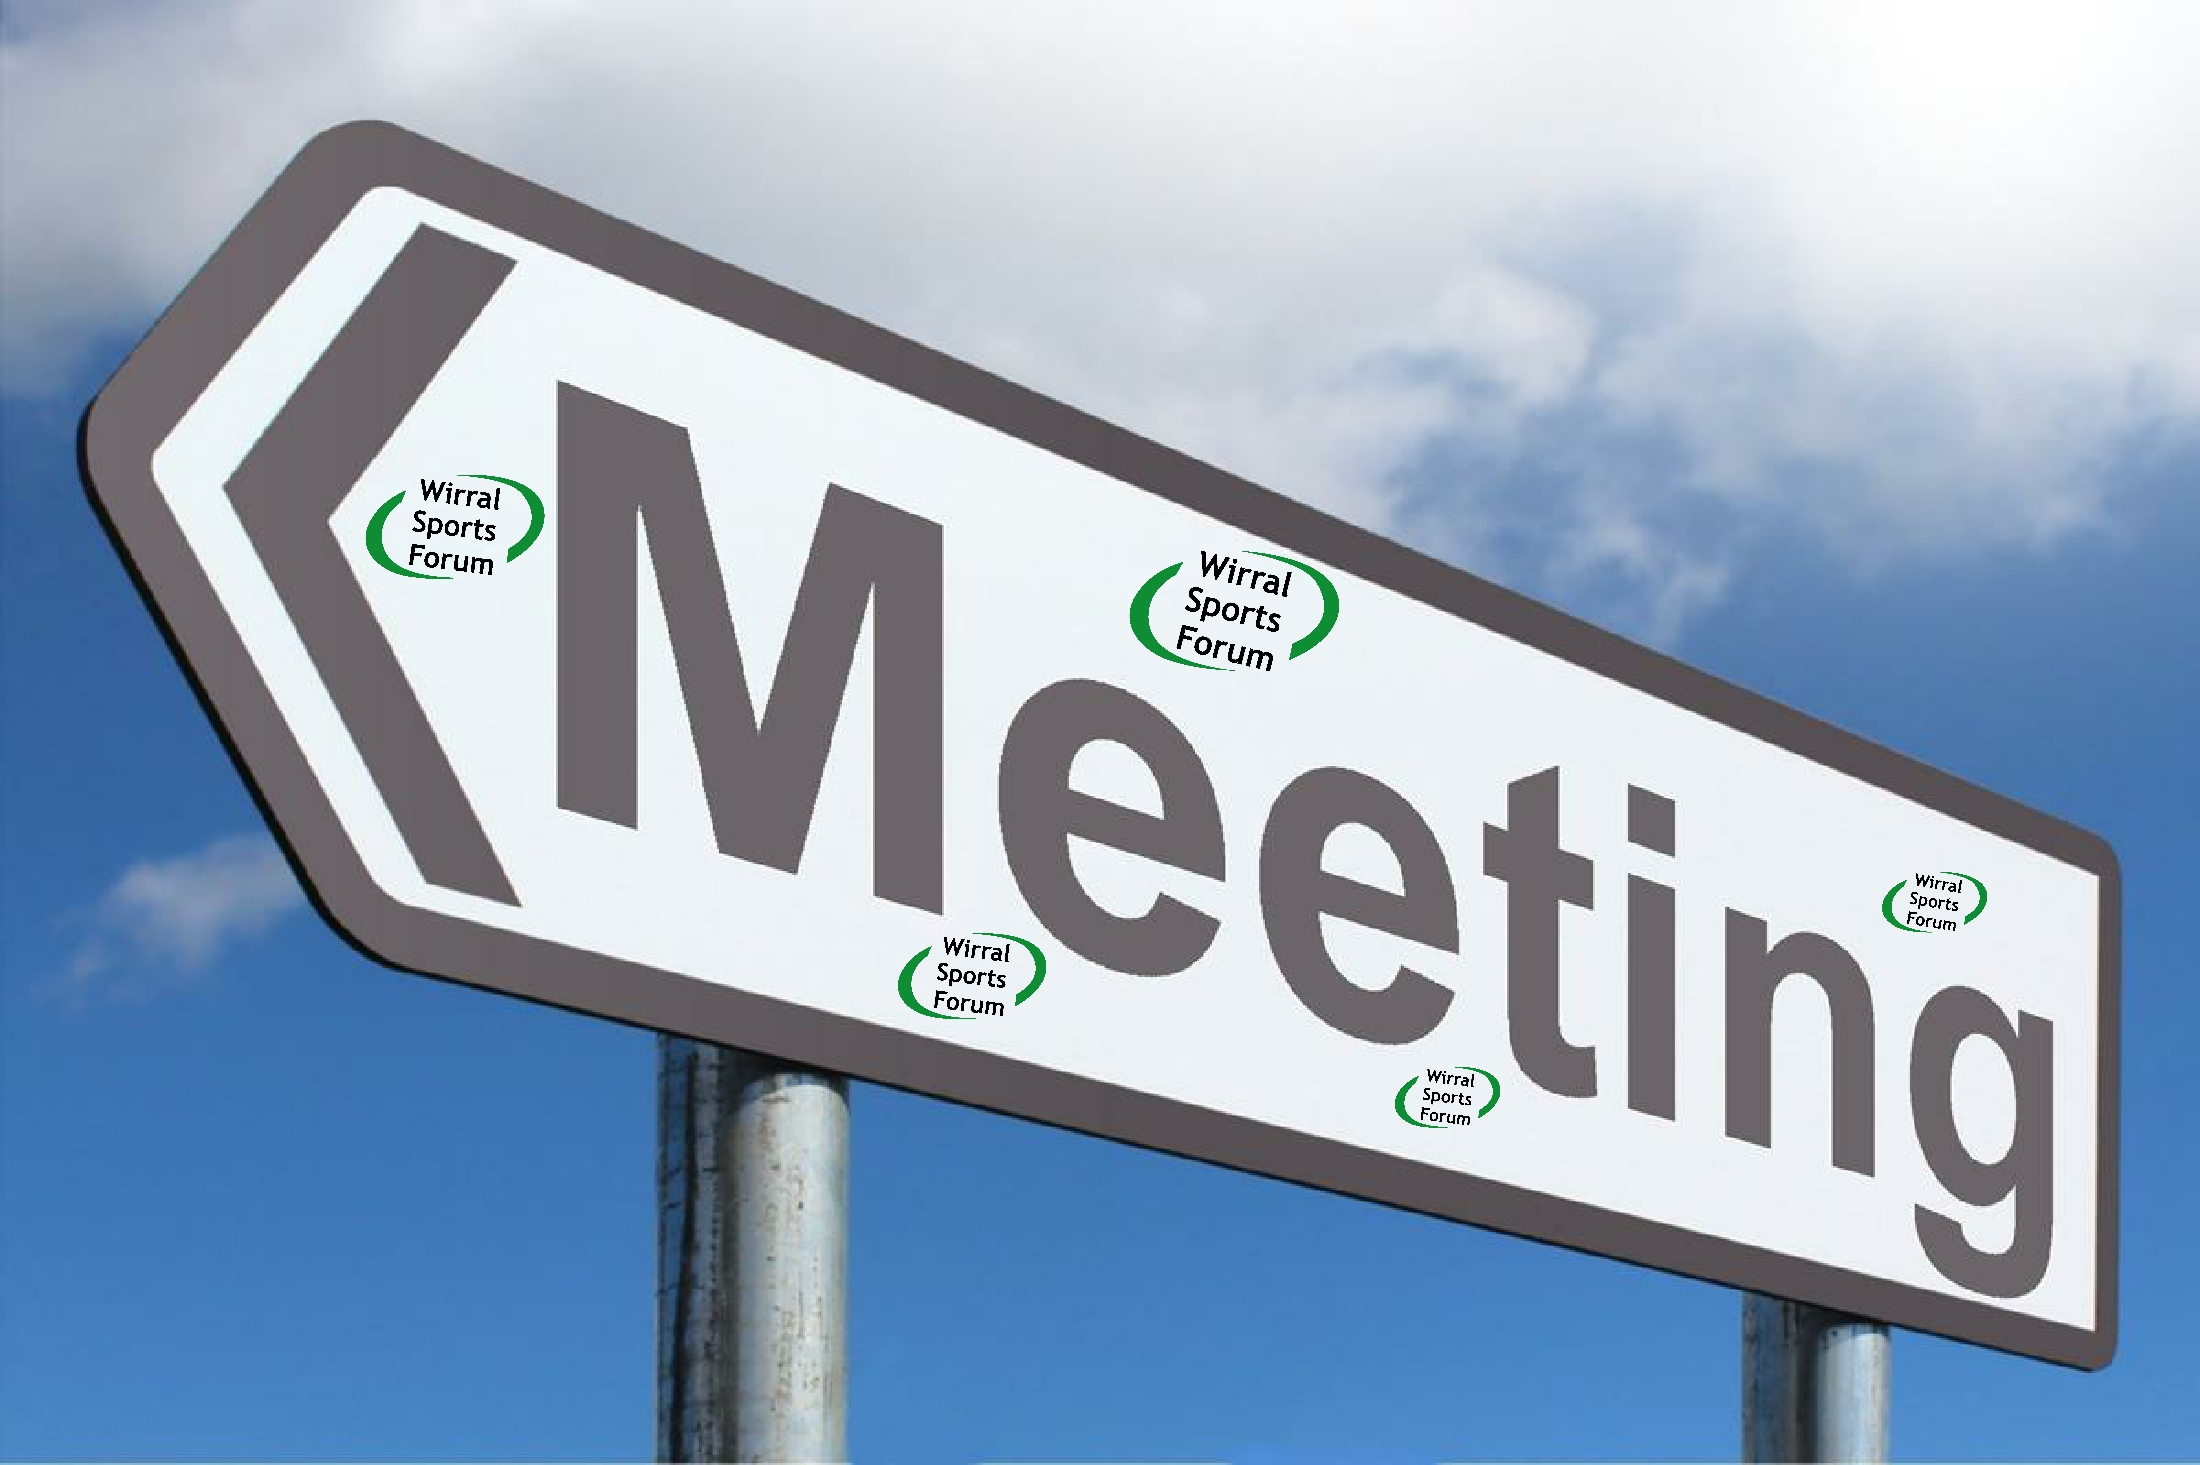 Next Meeting Of Wirral Sports Forum